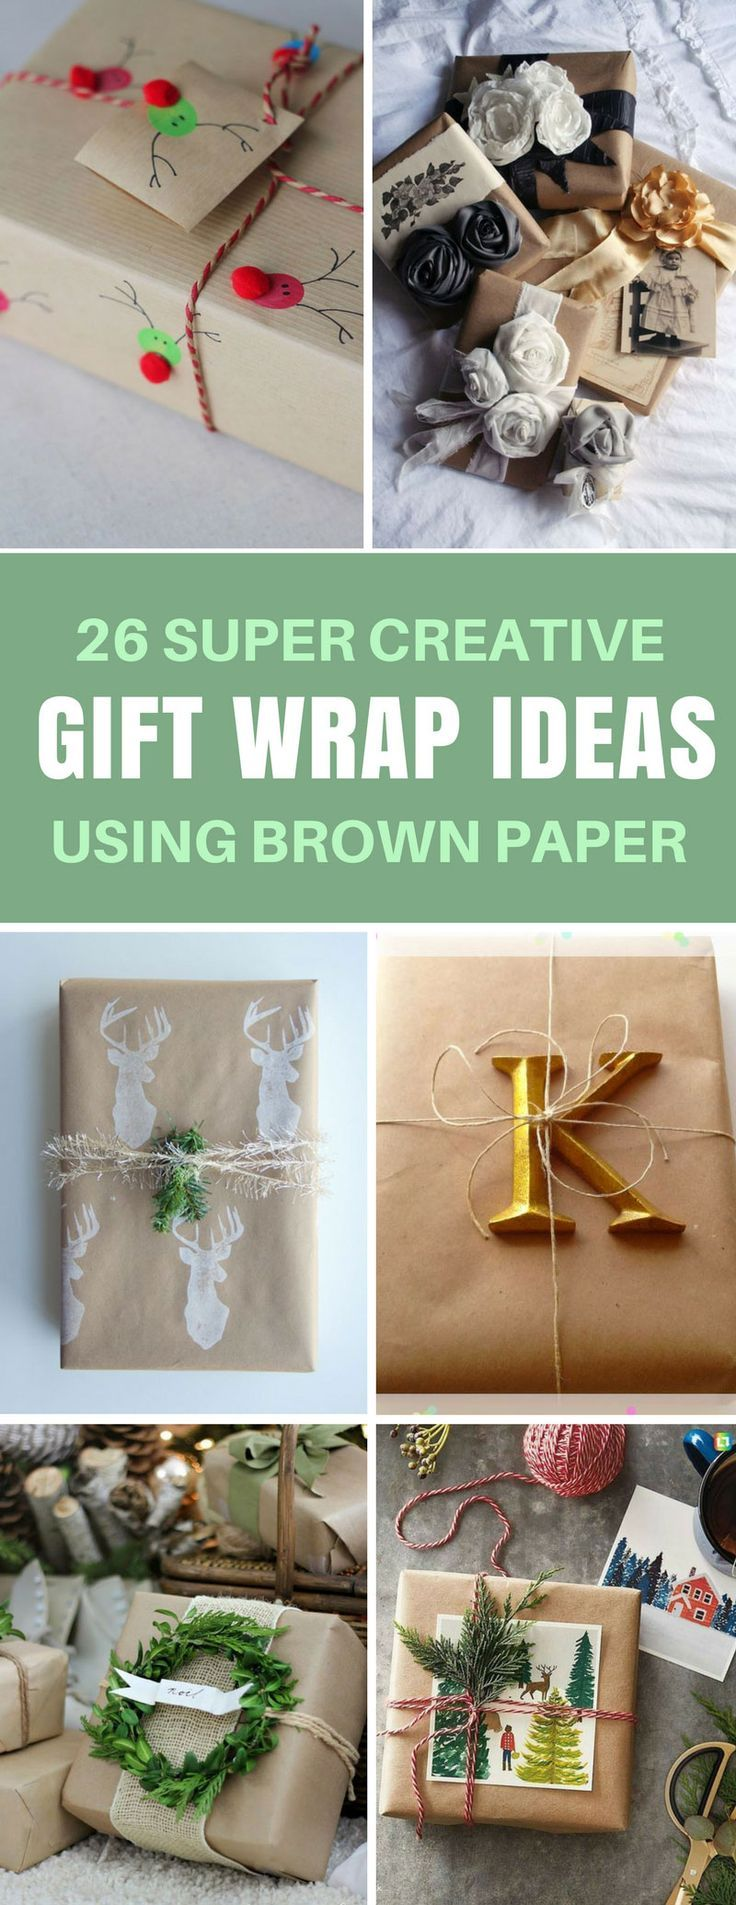 bridal shower poem for not wrapping gifts%0A Gift Wrap Ideas Using Brown Paper  Seriously these ideas look so good your  friends will